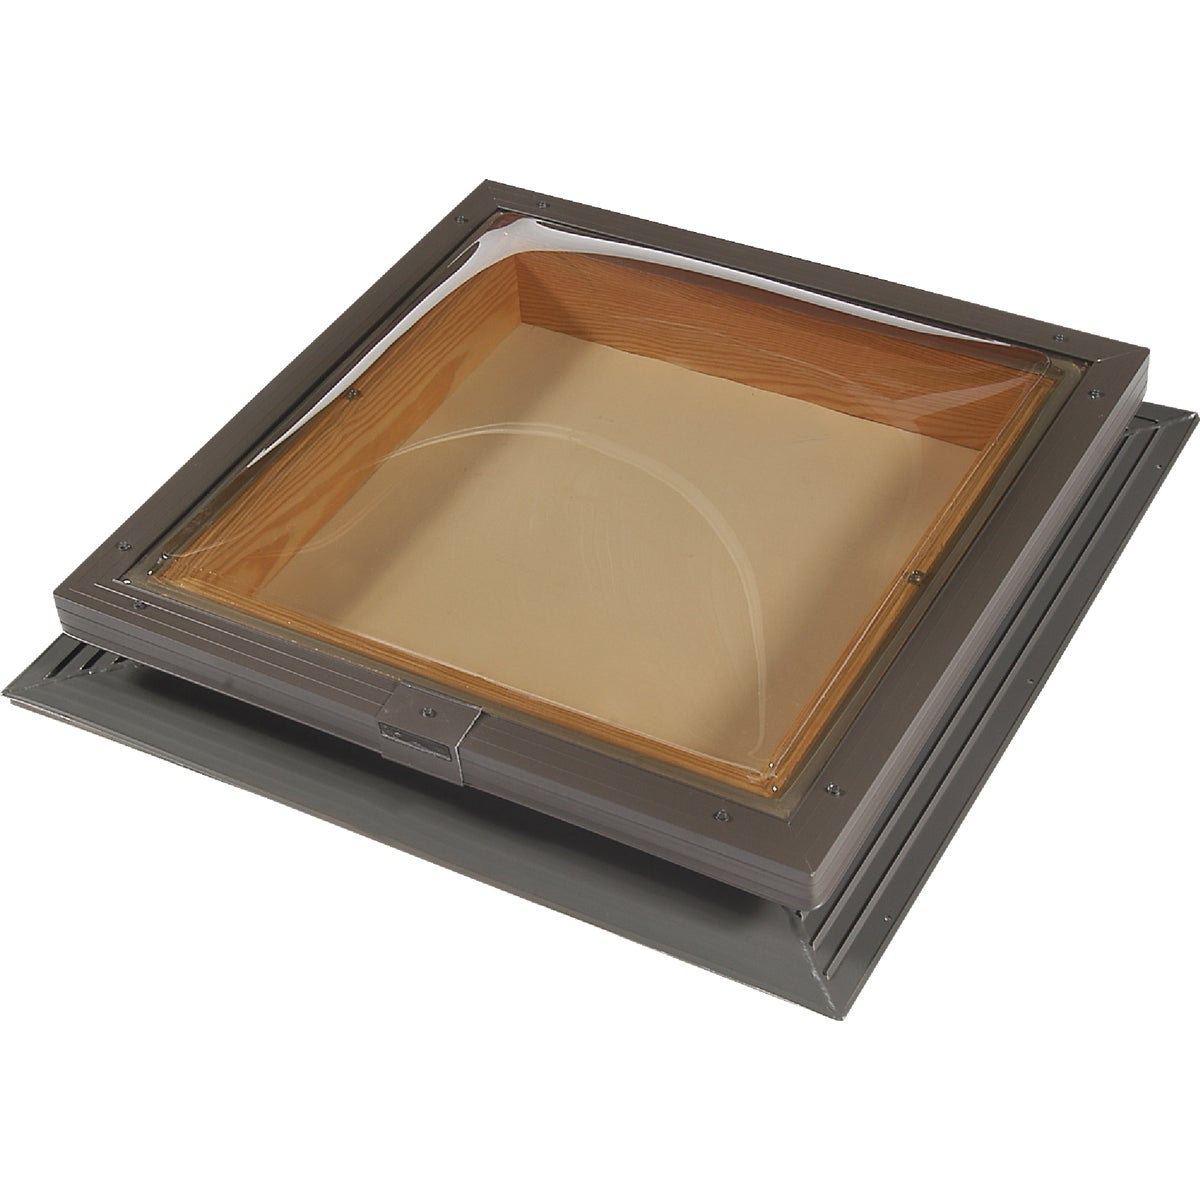 2X2 BZ/CL 3DOME SKYLIGHT - SFAW2222BCCB by Sun Tek Manuf Inc